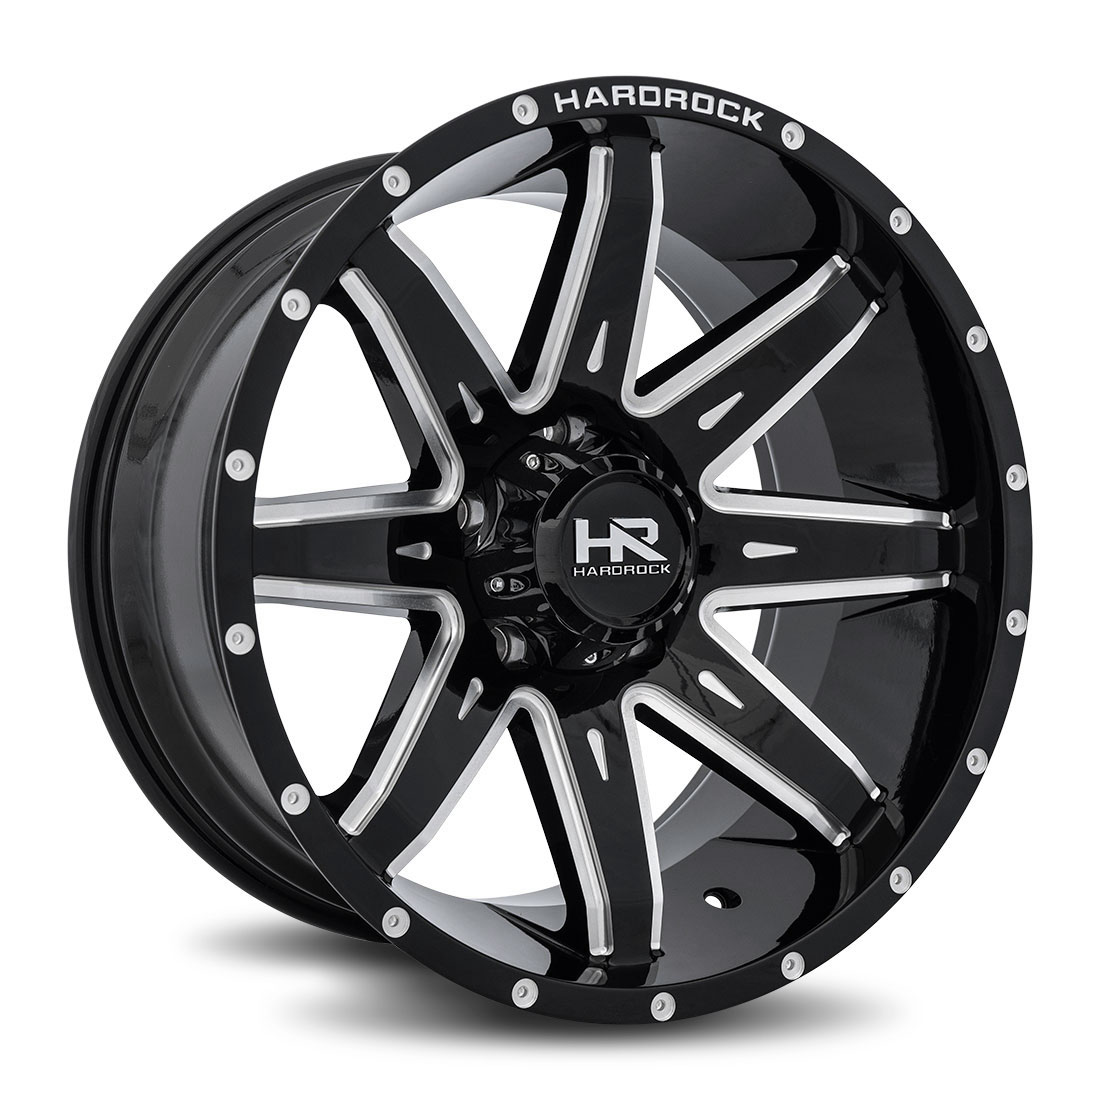 Hardrock Offroad Wheels H502 Painkiller-Xposed - Gloss Black Milled - 20x10